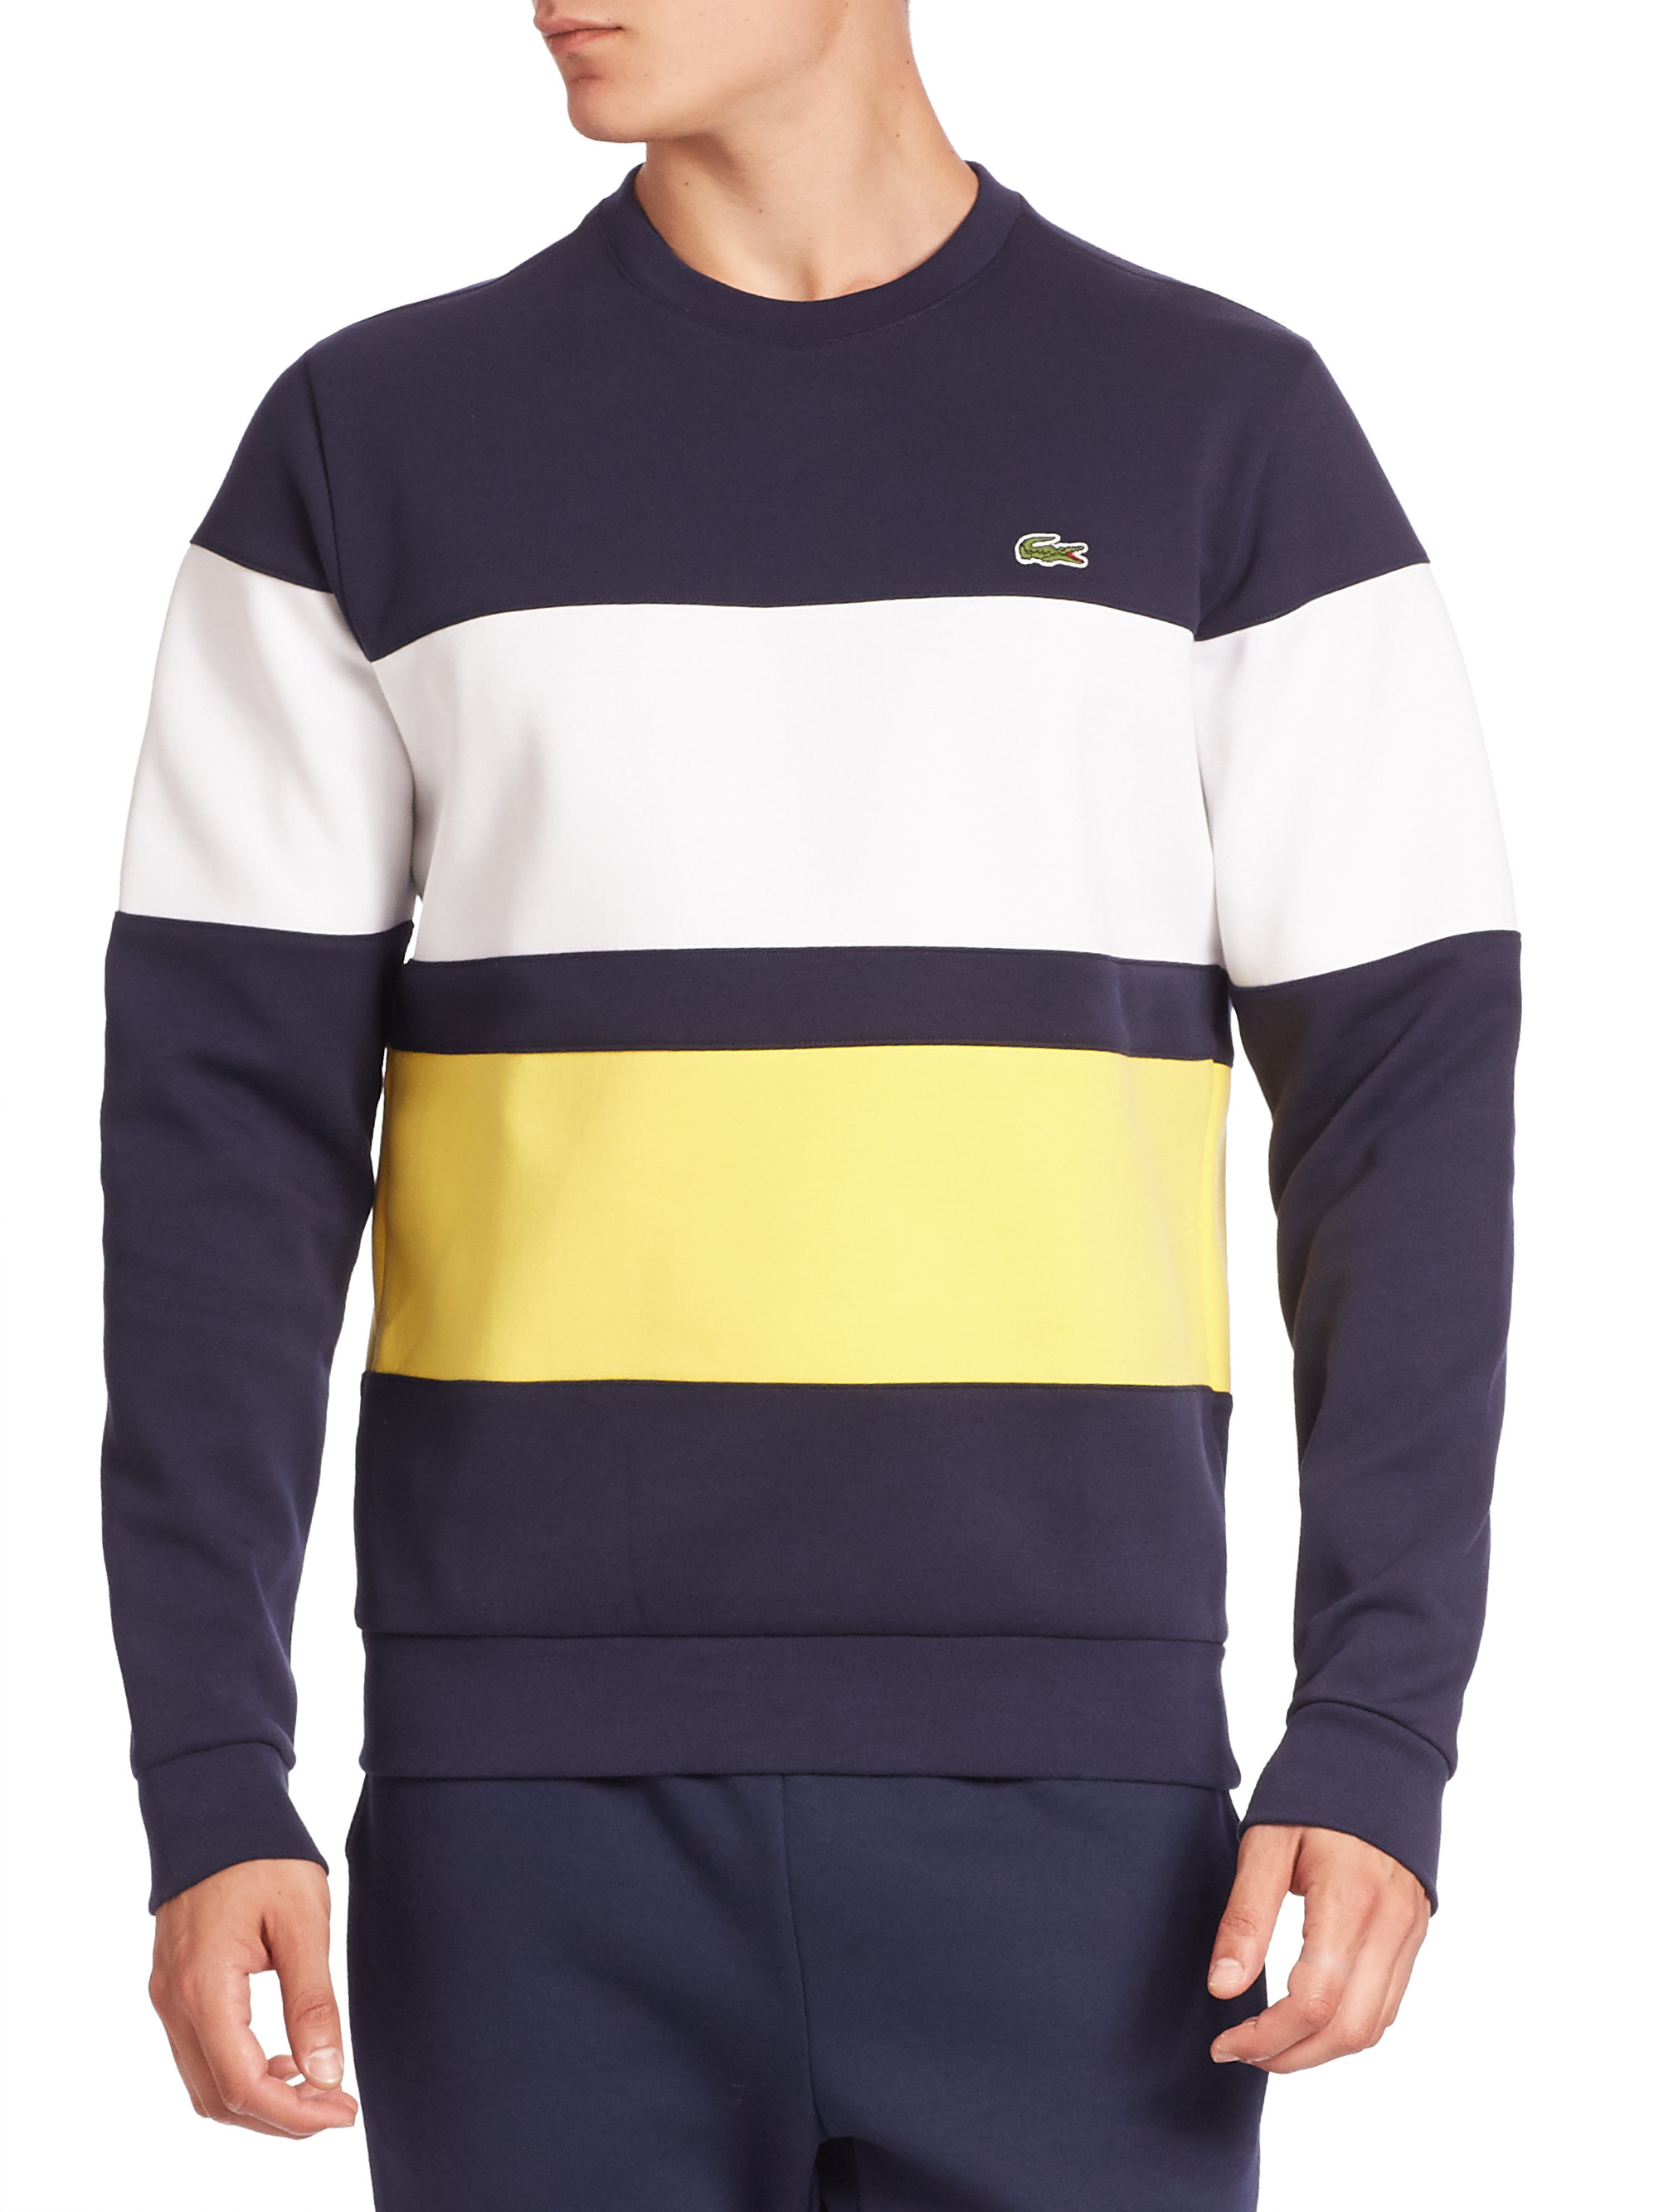 a75cbba5f4 Lacoste Striped Long Sleeve Sweatshirt in Blue for Men - Lyst